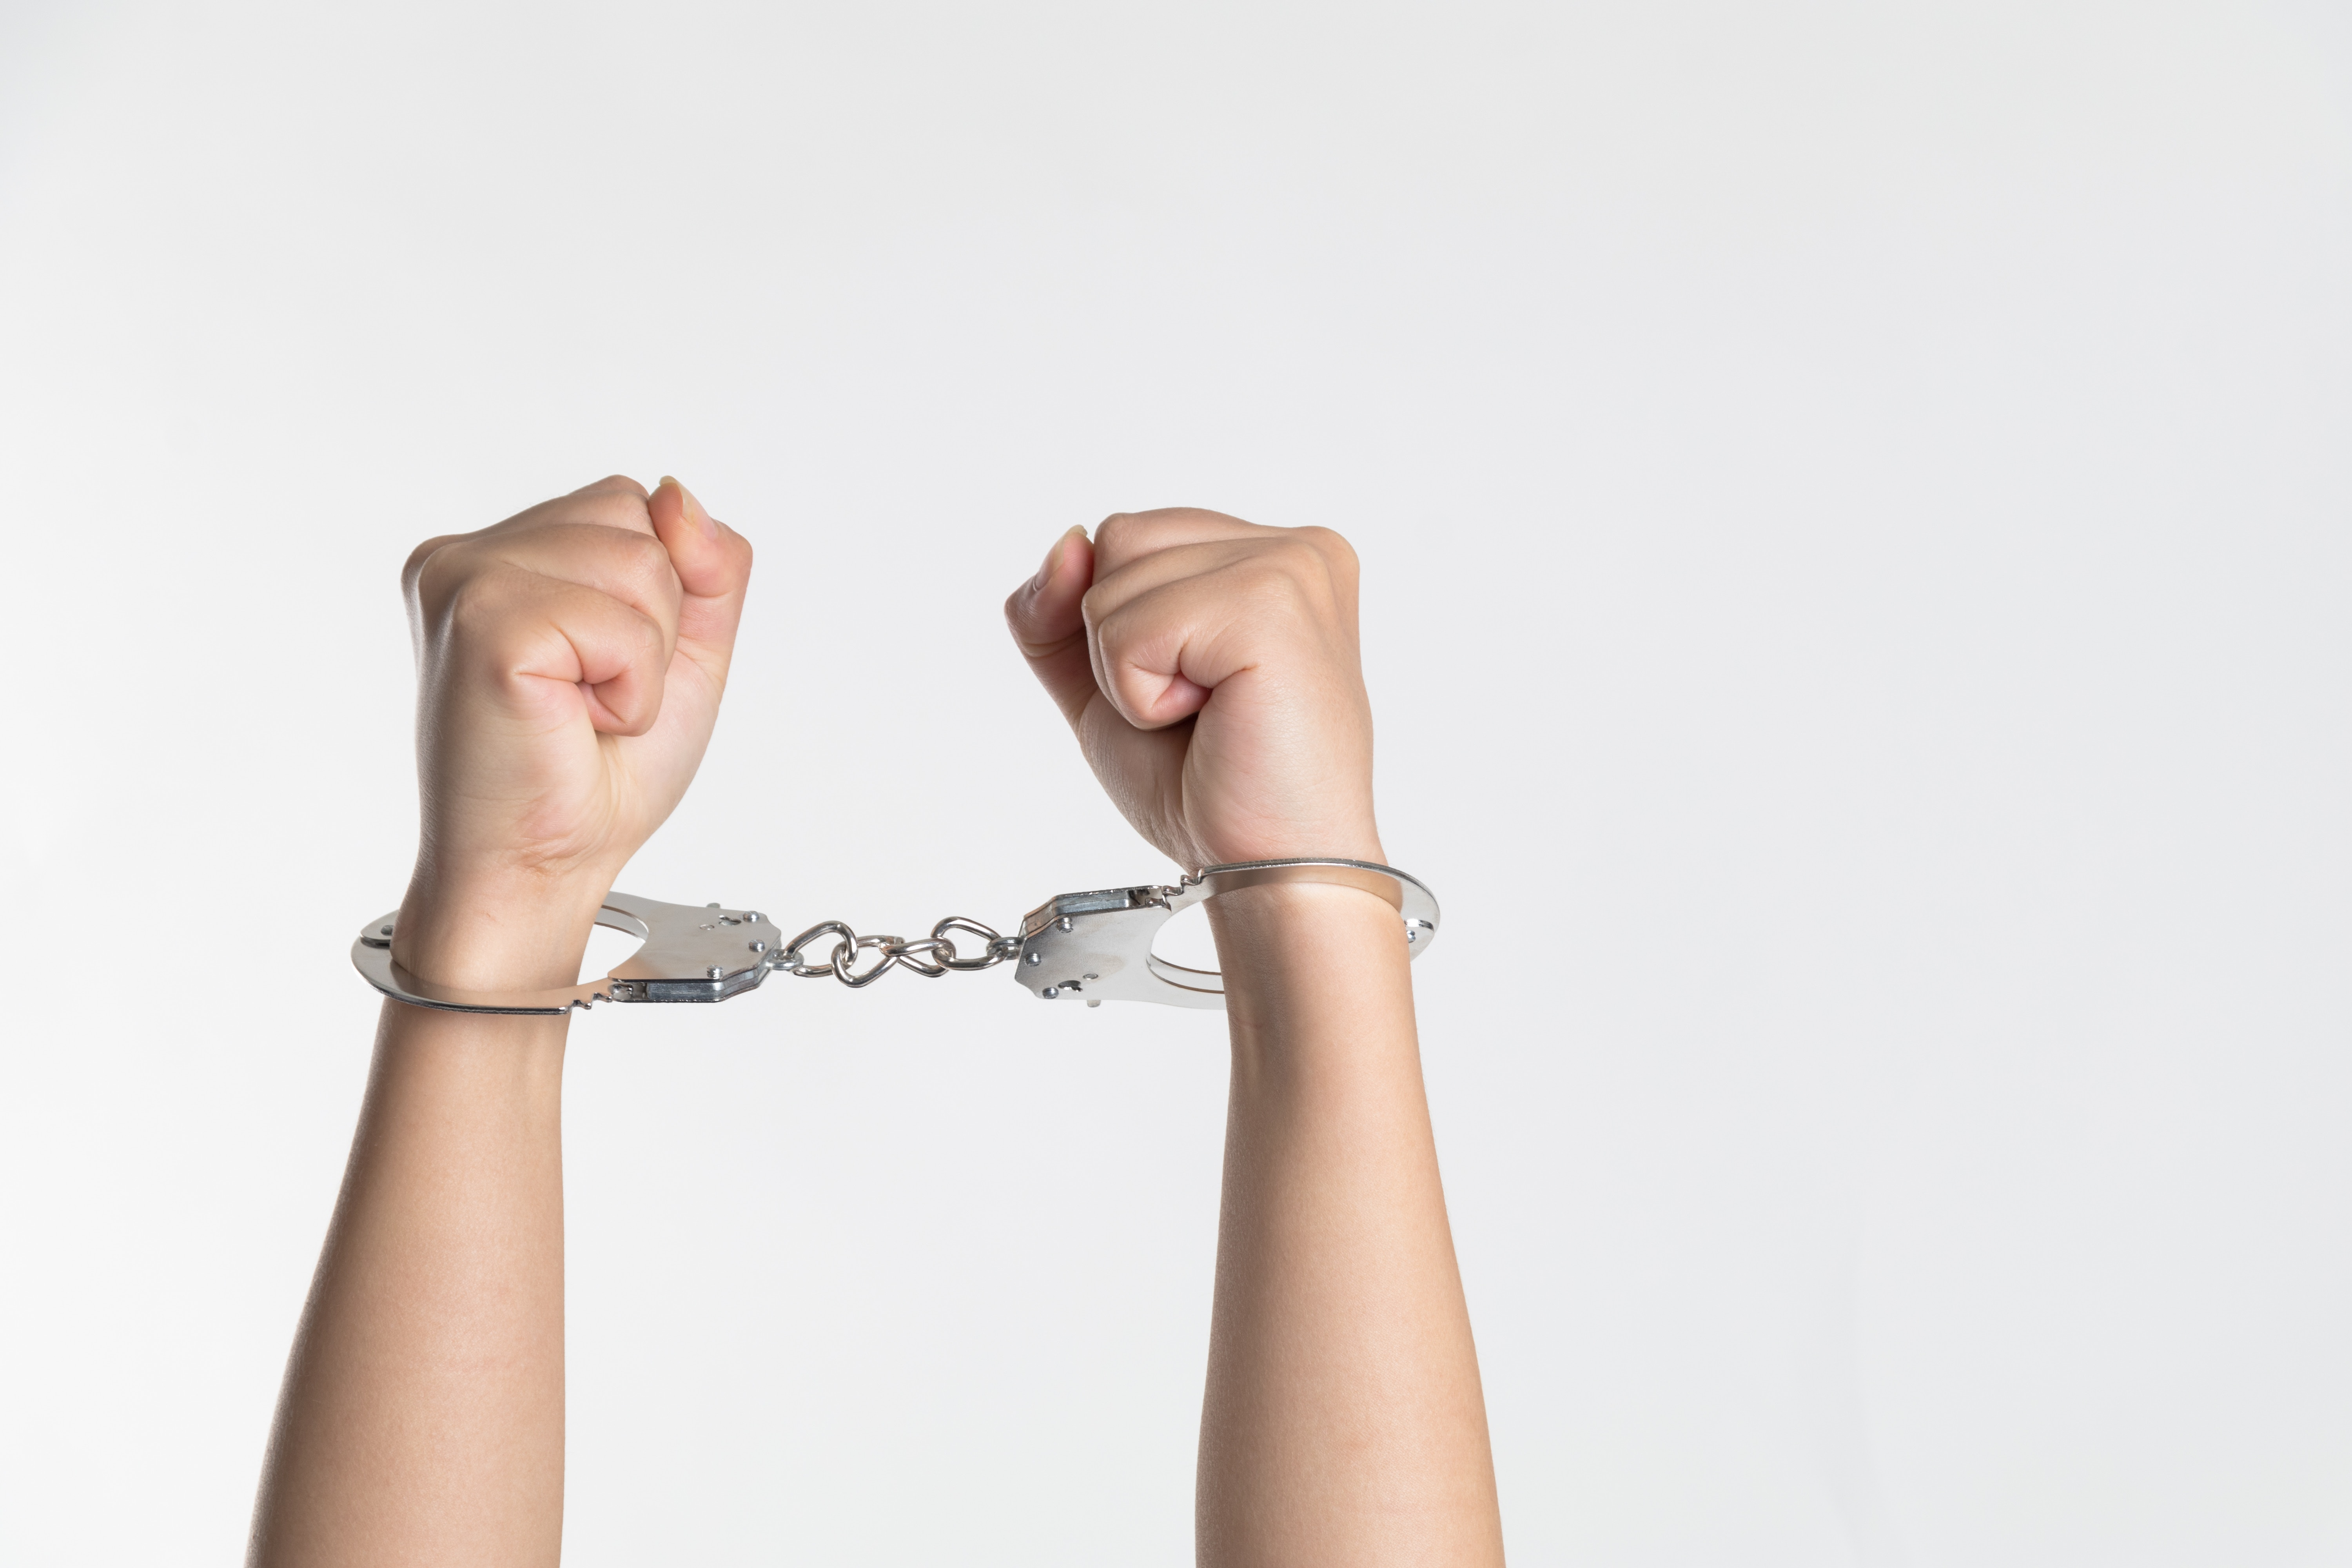 Photo of arms raised as fists in the air with handcuffs on each arm